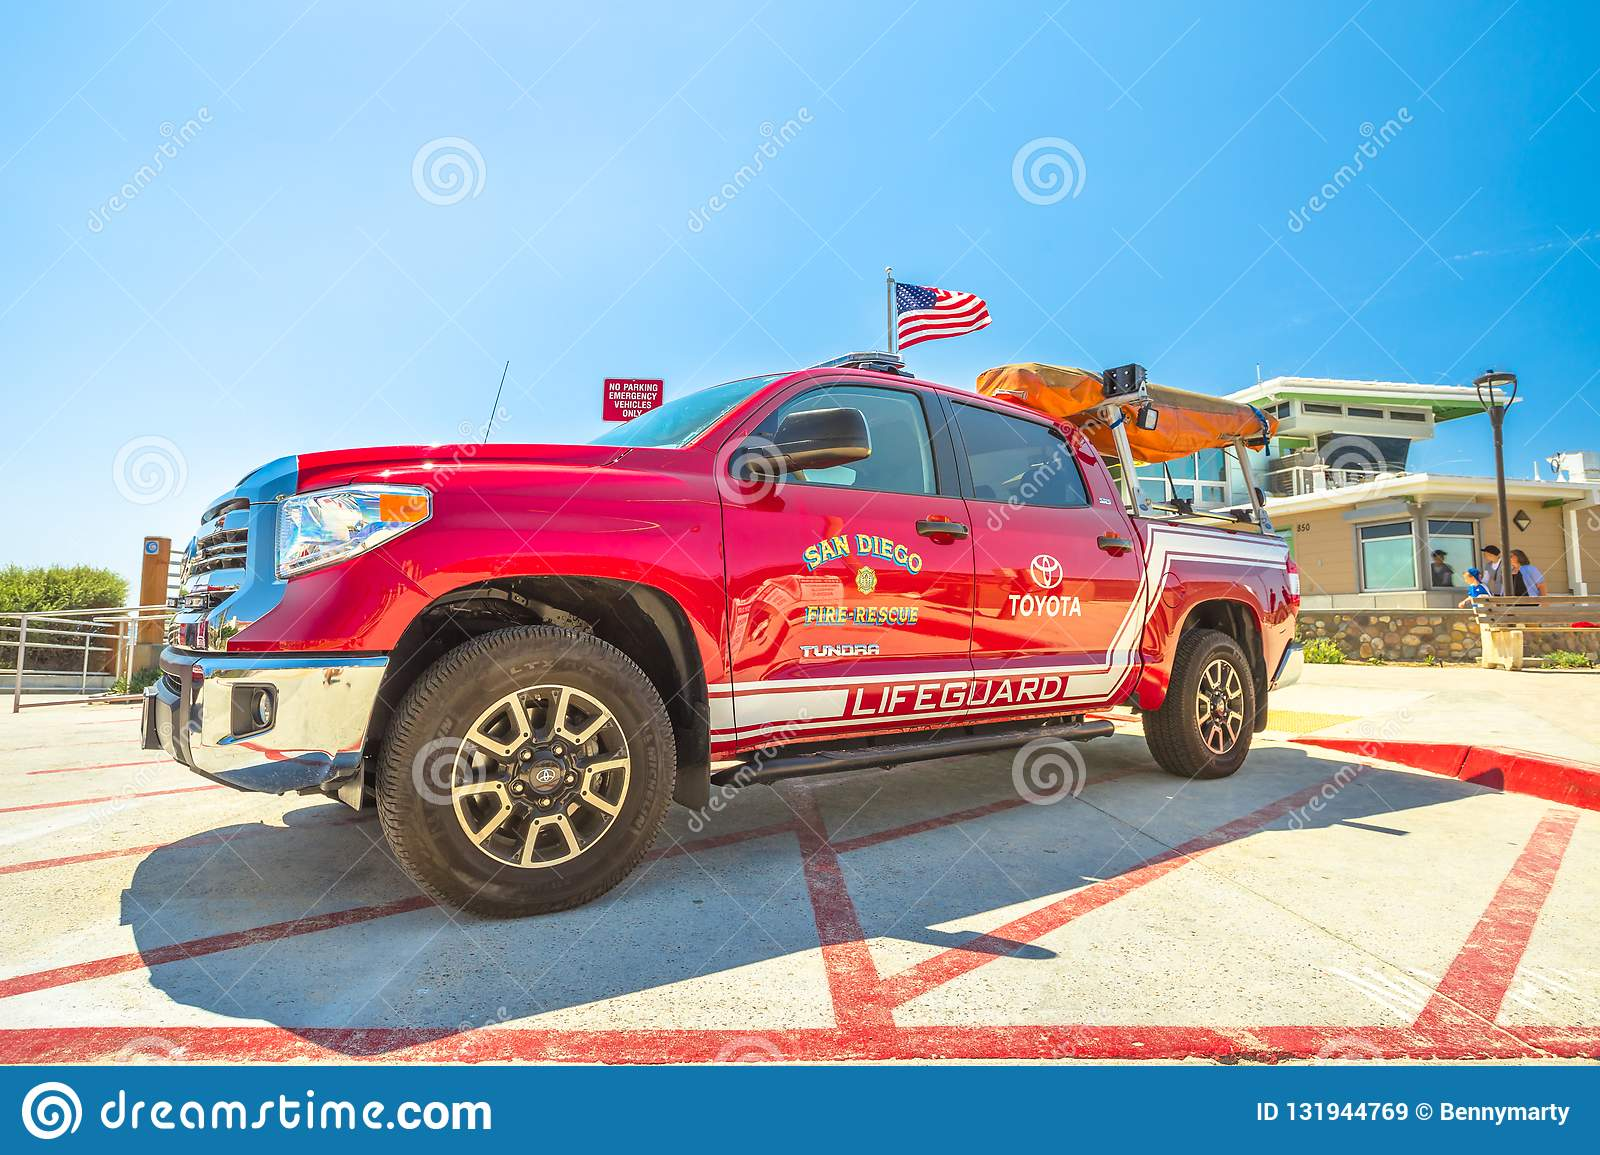 San Diego fire-rescue editorial stock image  Image of diego